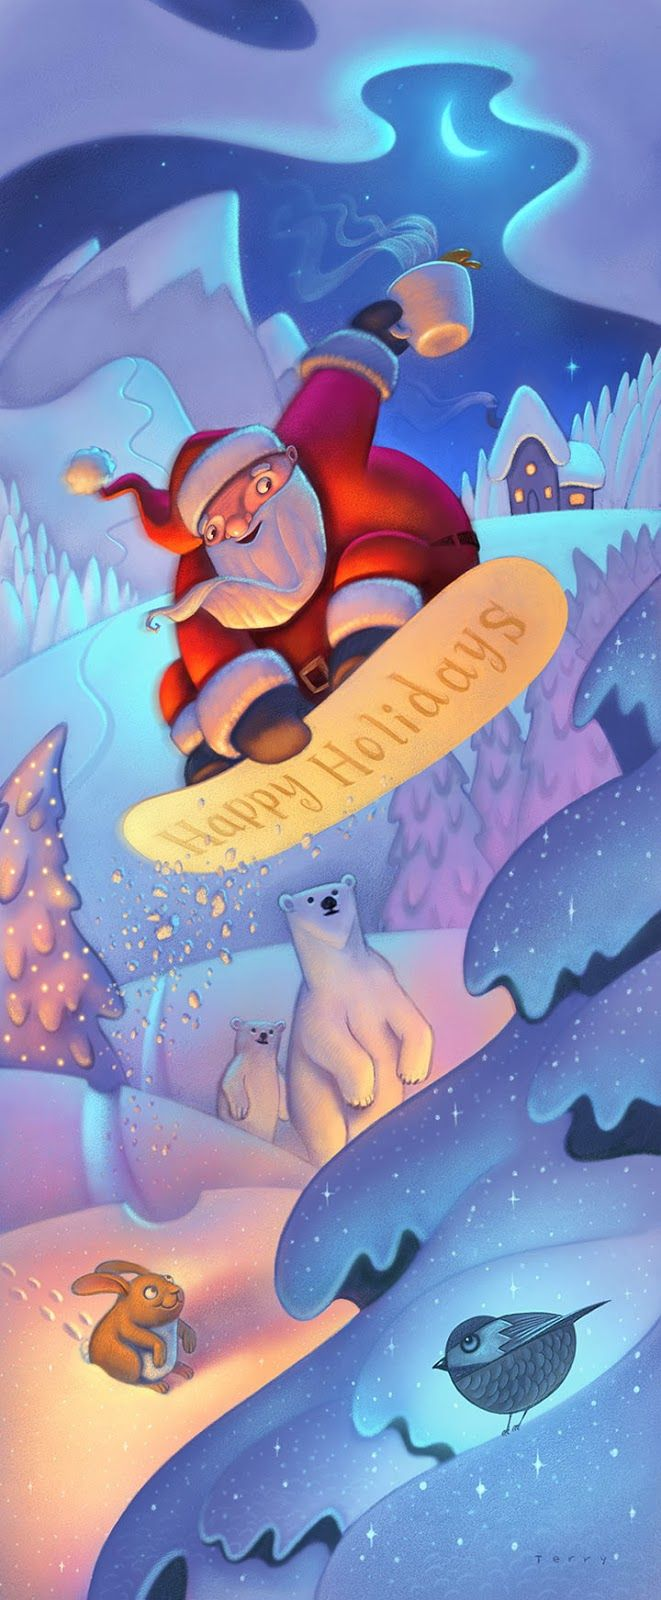 Painting Color & Light Class at http://schoolofvisualstorytelling.bigcartel.com/ Learn how to add luminosity to your illustrations in our 6 week course! Santa is riding his snowboard this Christmas. Illustration by will terry children's book illustrator, app creator, UVU teacher and SVS instructor. http://www.willterry.blogspot.com/